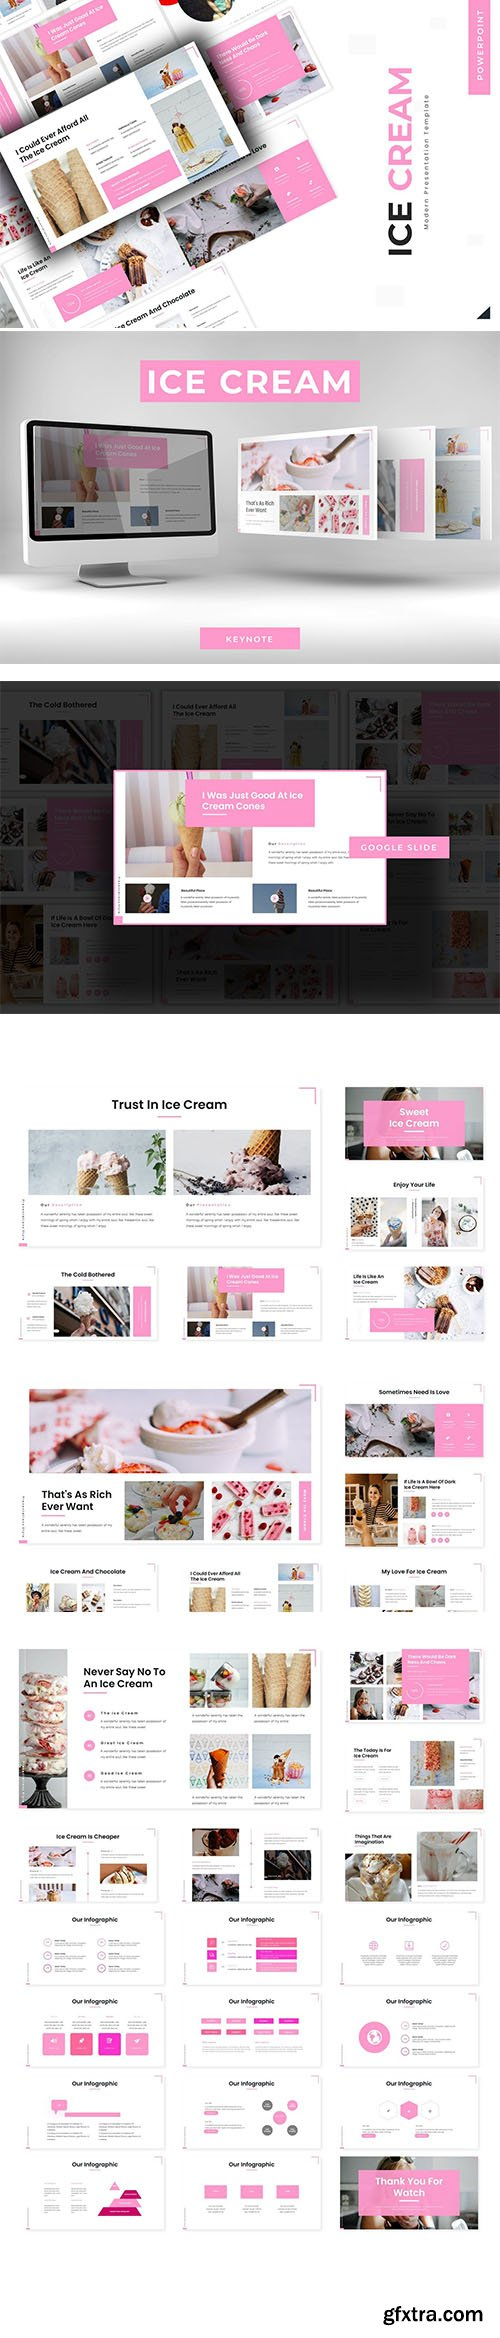 Sweet Ice Cream - Powerpoint Template, Keynote Template and Google Slide Template